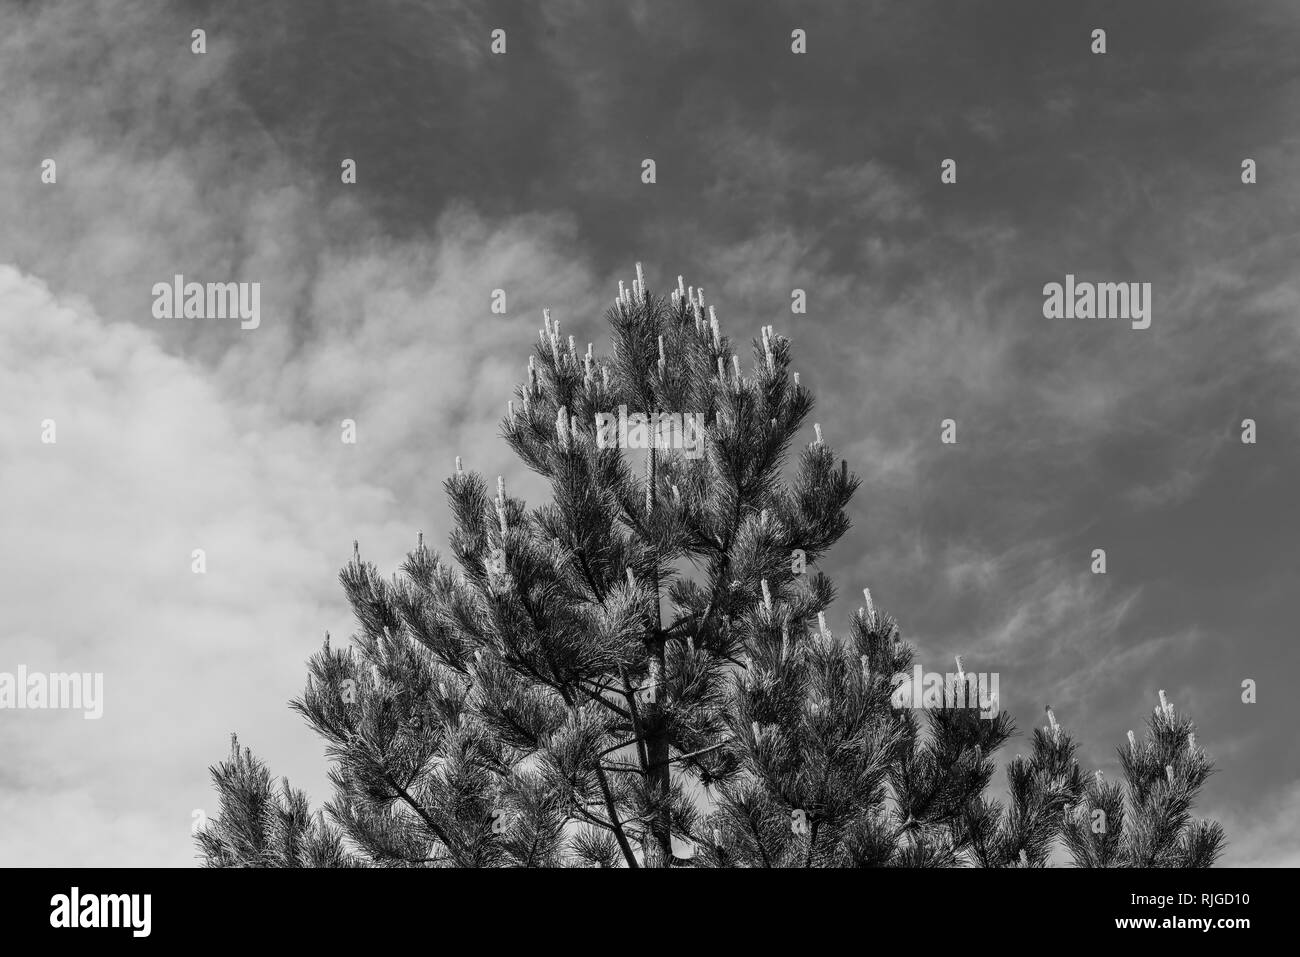 Majestic pine tree with male pollen-bearing cones in early spring with cloudy sky in the background black and white - Stock Image